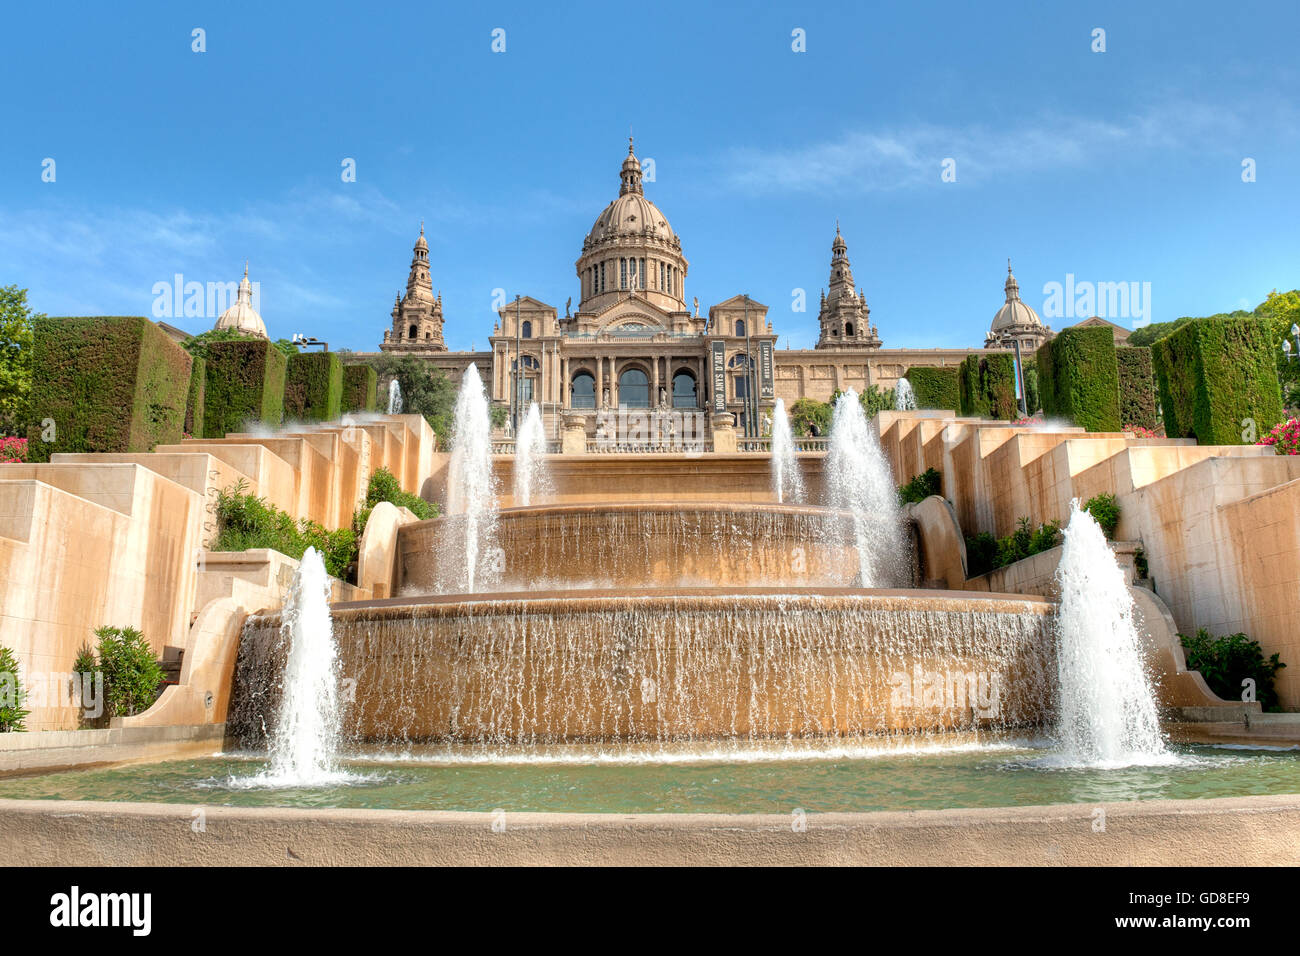 National Museum of arts building in Barcelona,Spain - Stock Image